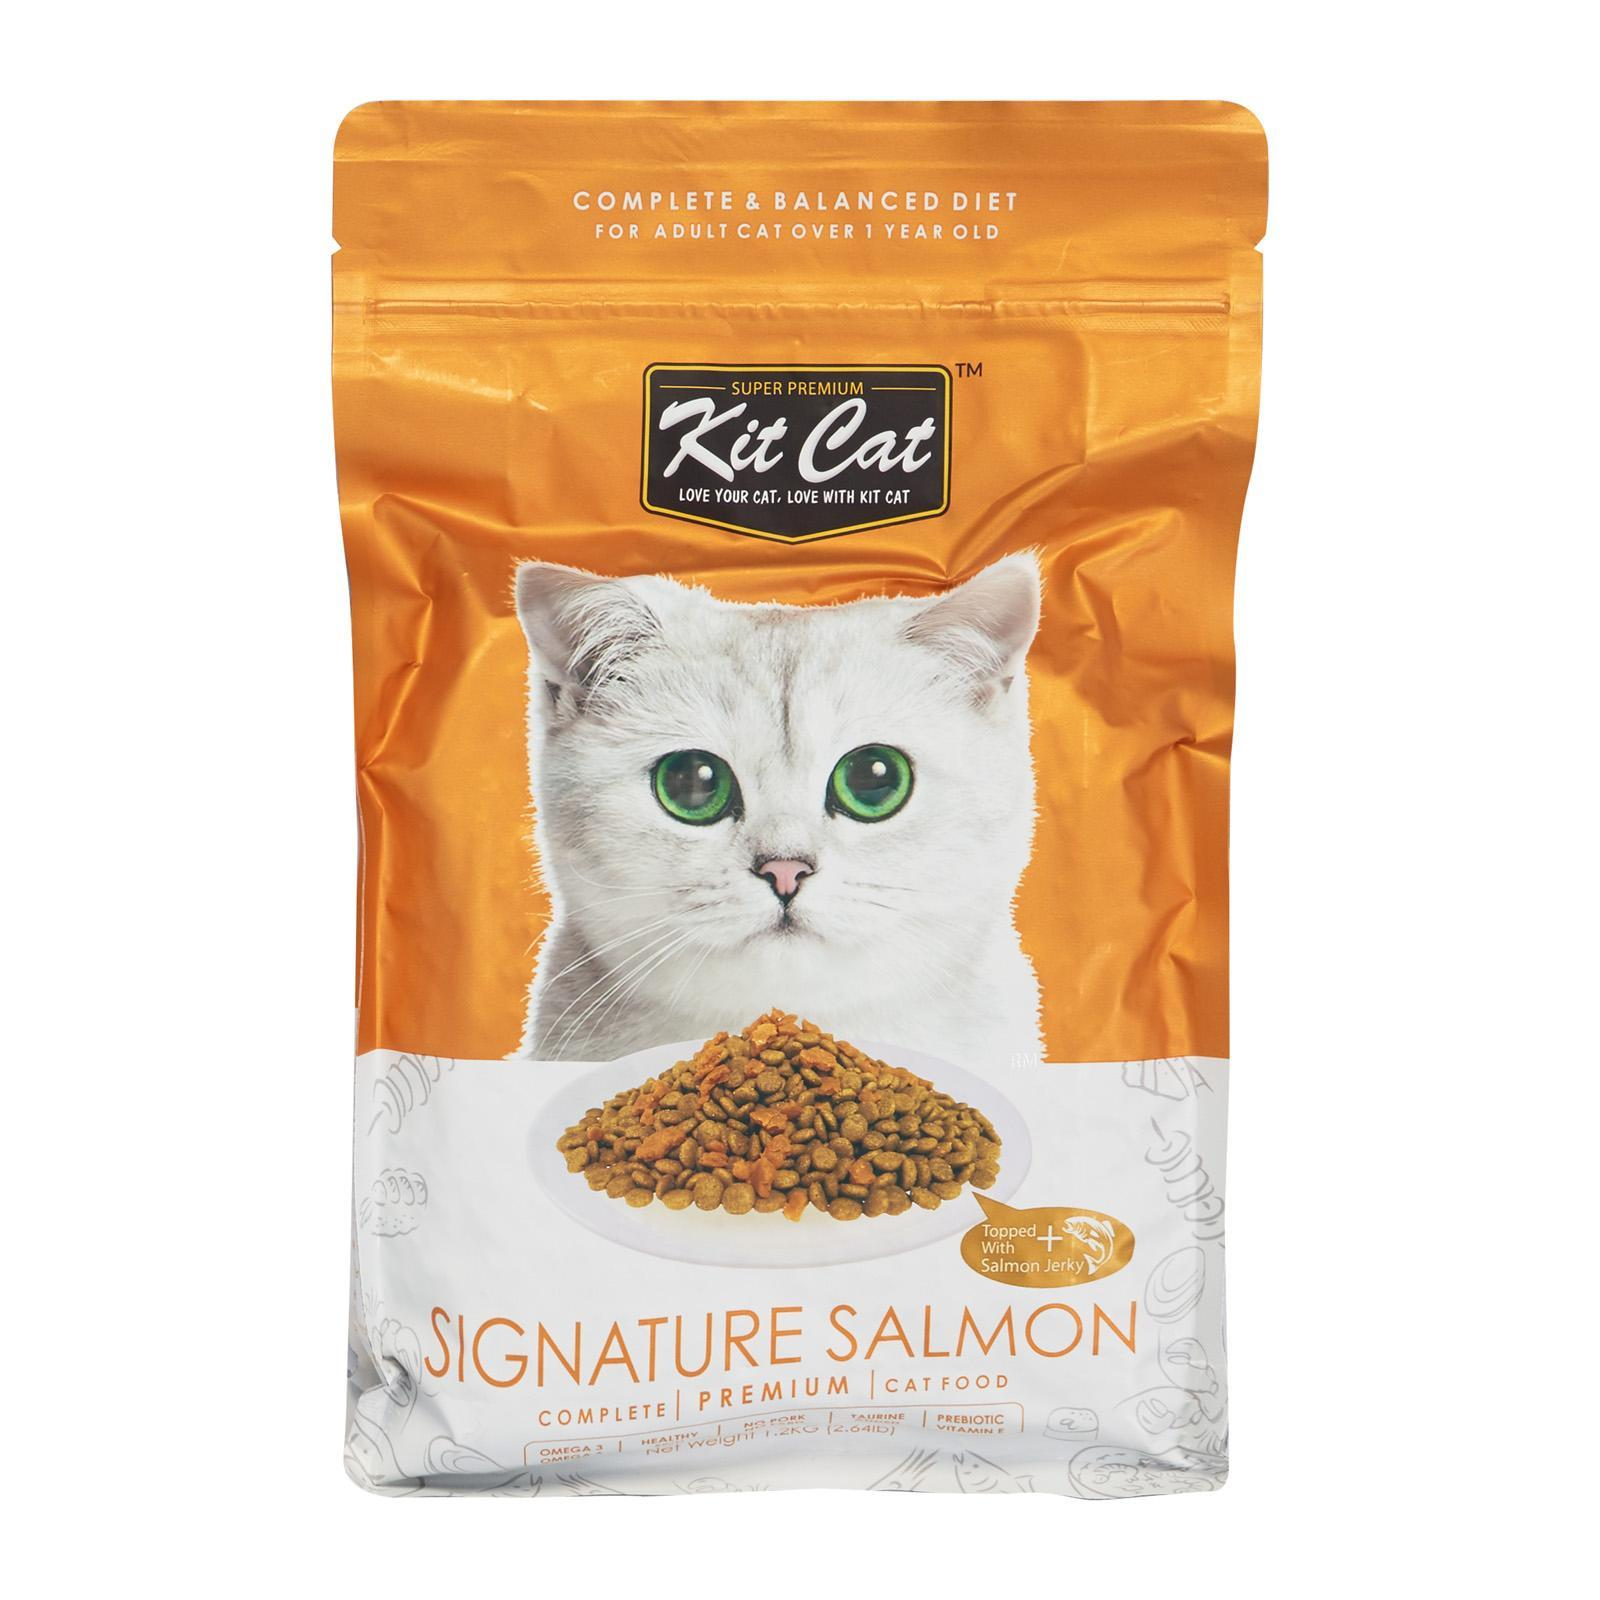 Kit Cat Premium Cat Food Signature Salmon - Dry Cat Food